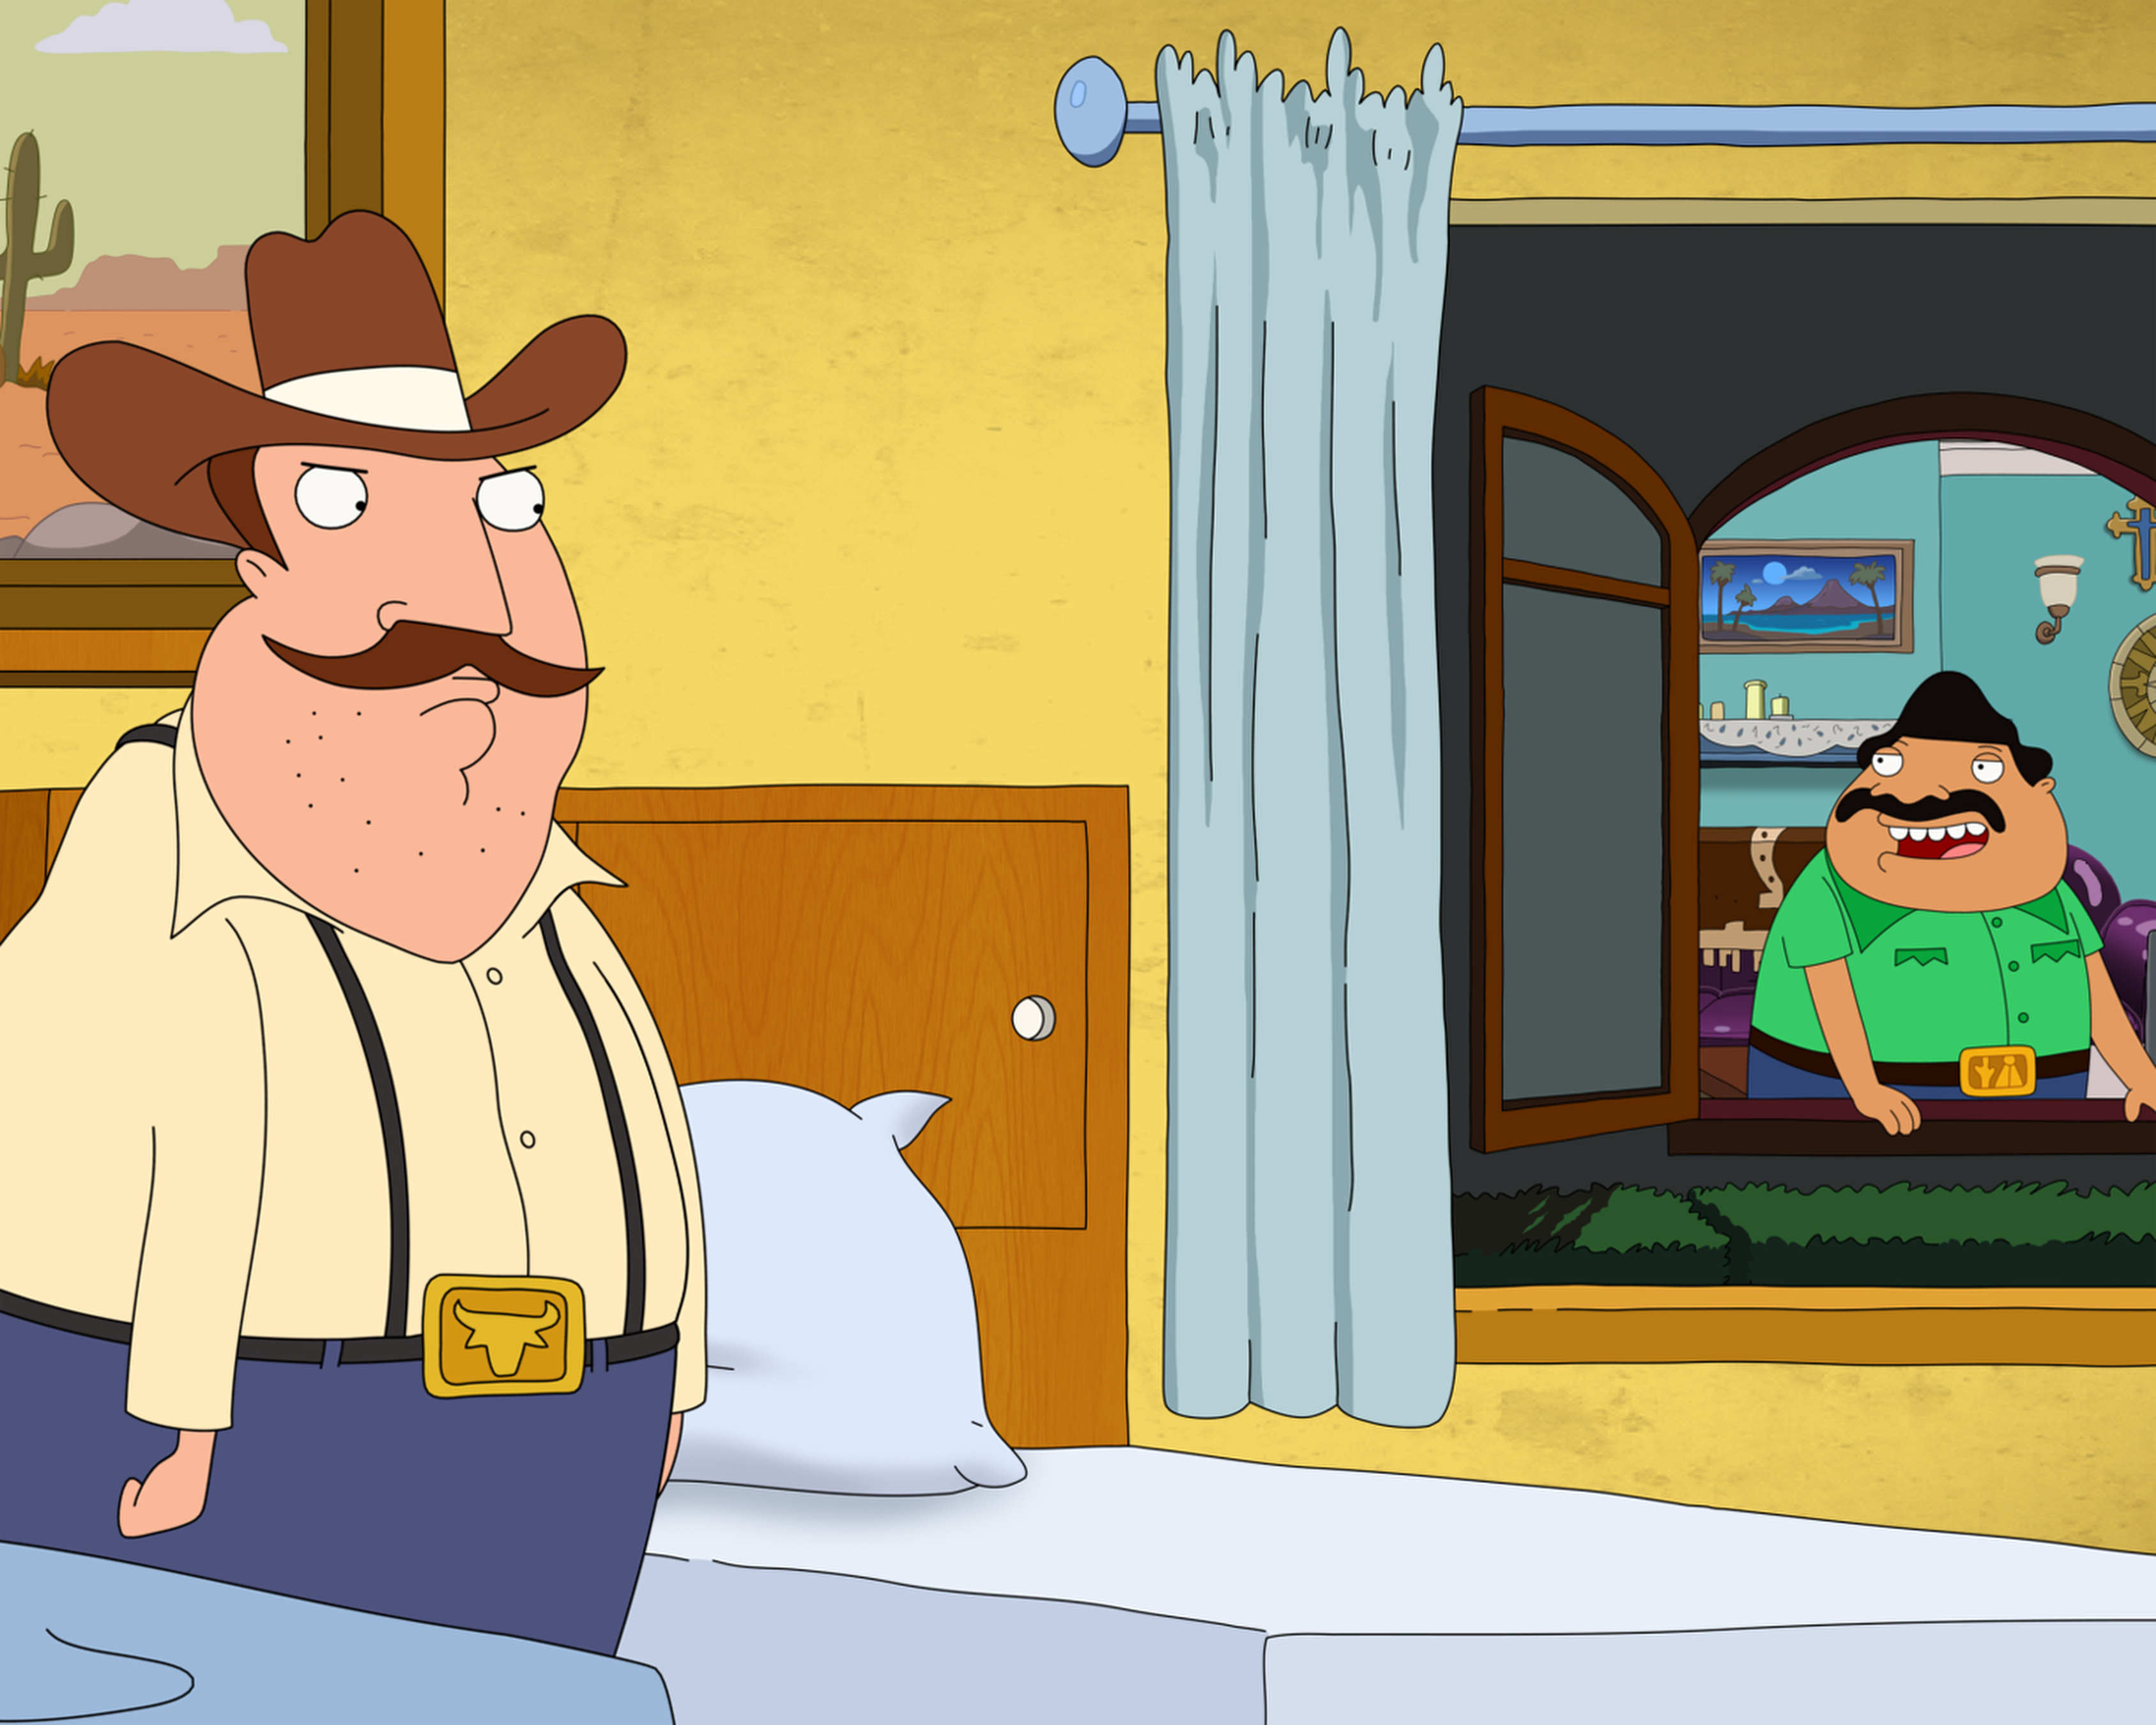 BORDERTOWN: A scene from BORDERTOWN on FOX. © and ª BORDERTOWN and TCFFC ALL RIGHTS RESERVED. CR: FOX